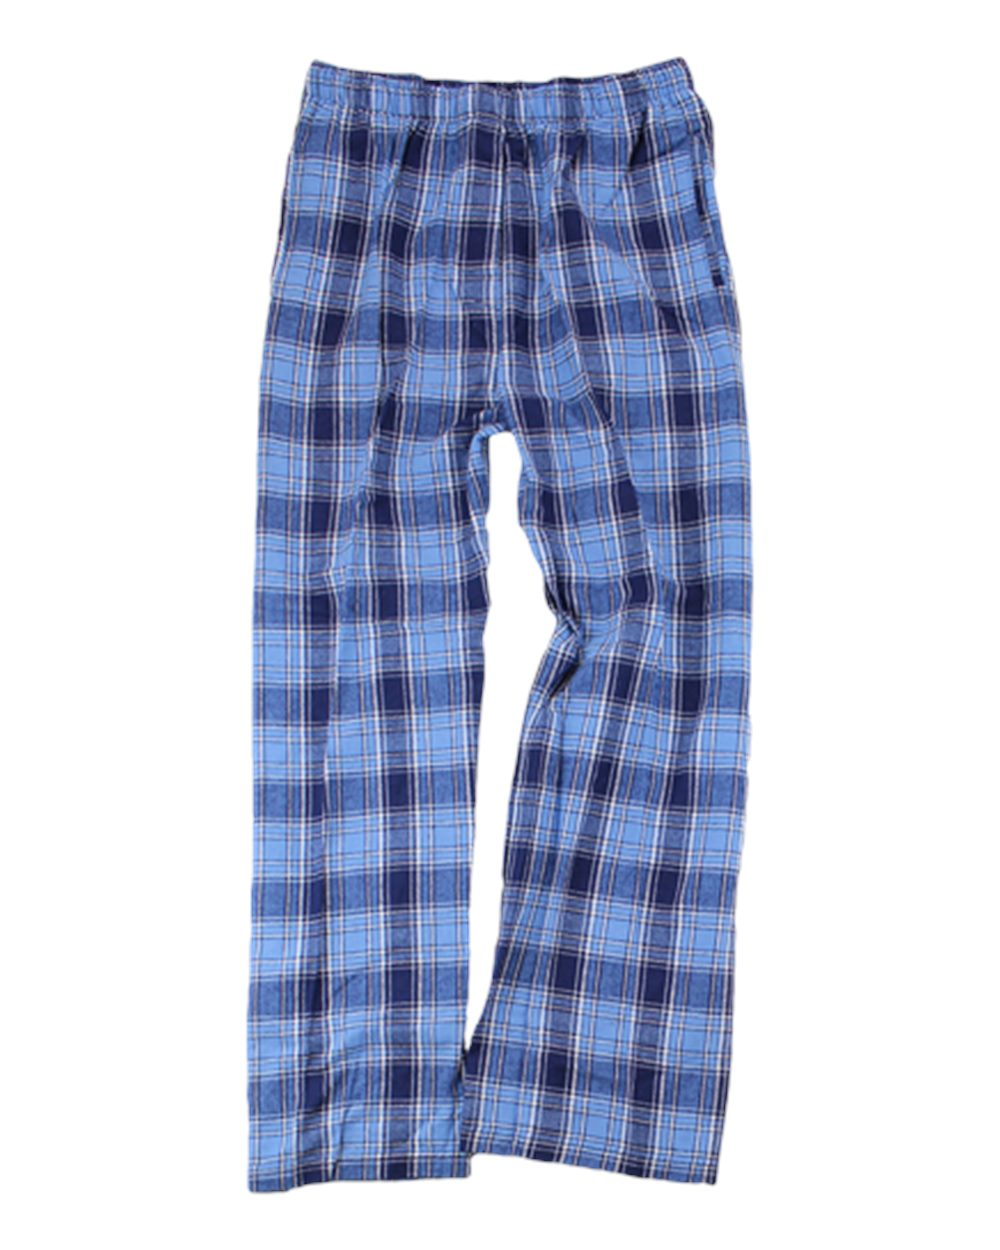 Boxercraft pants Youth Medium New with Tags